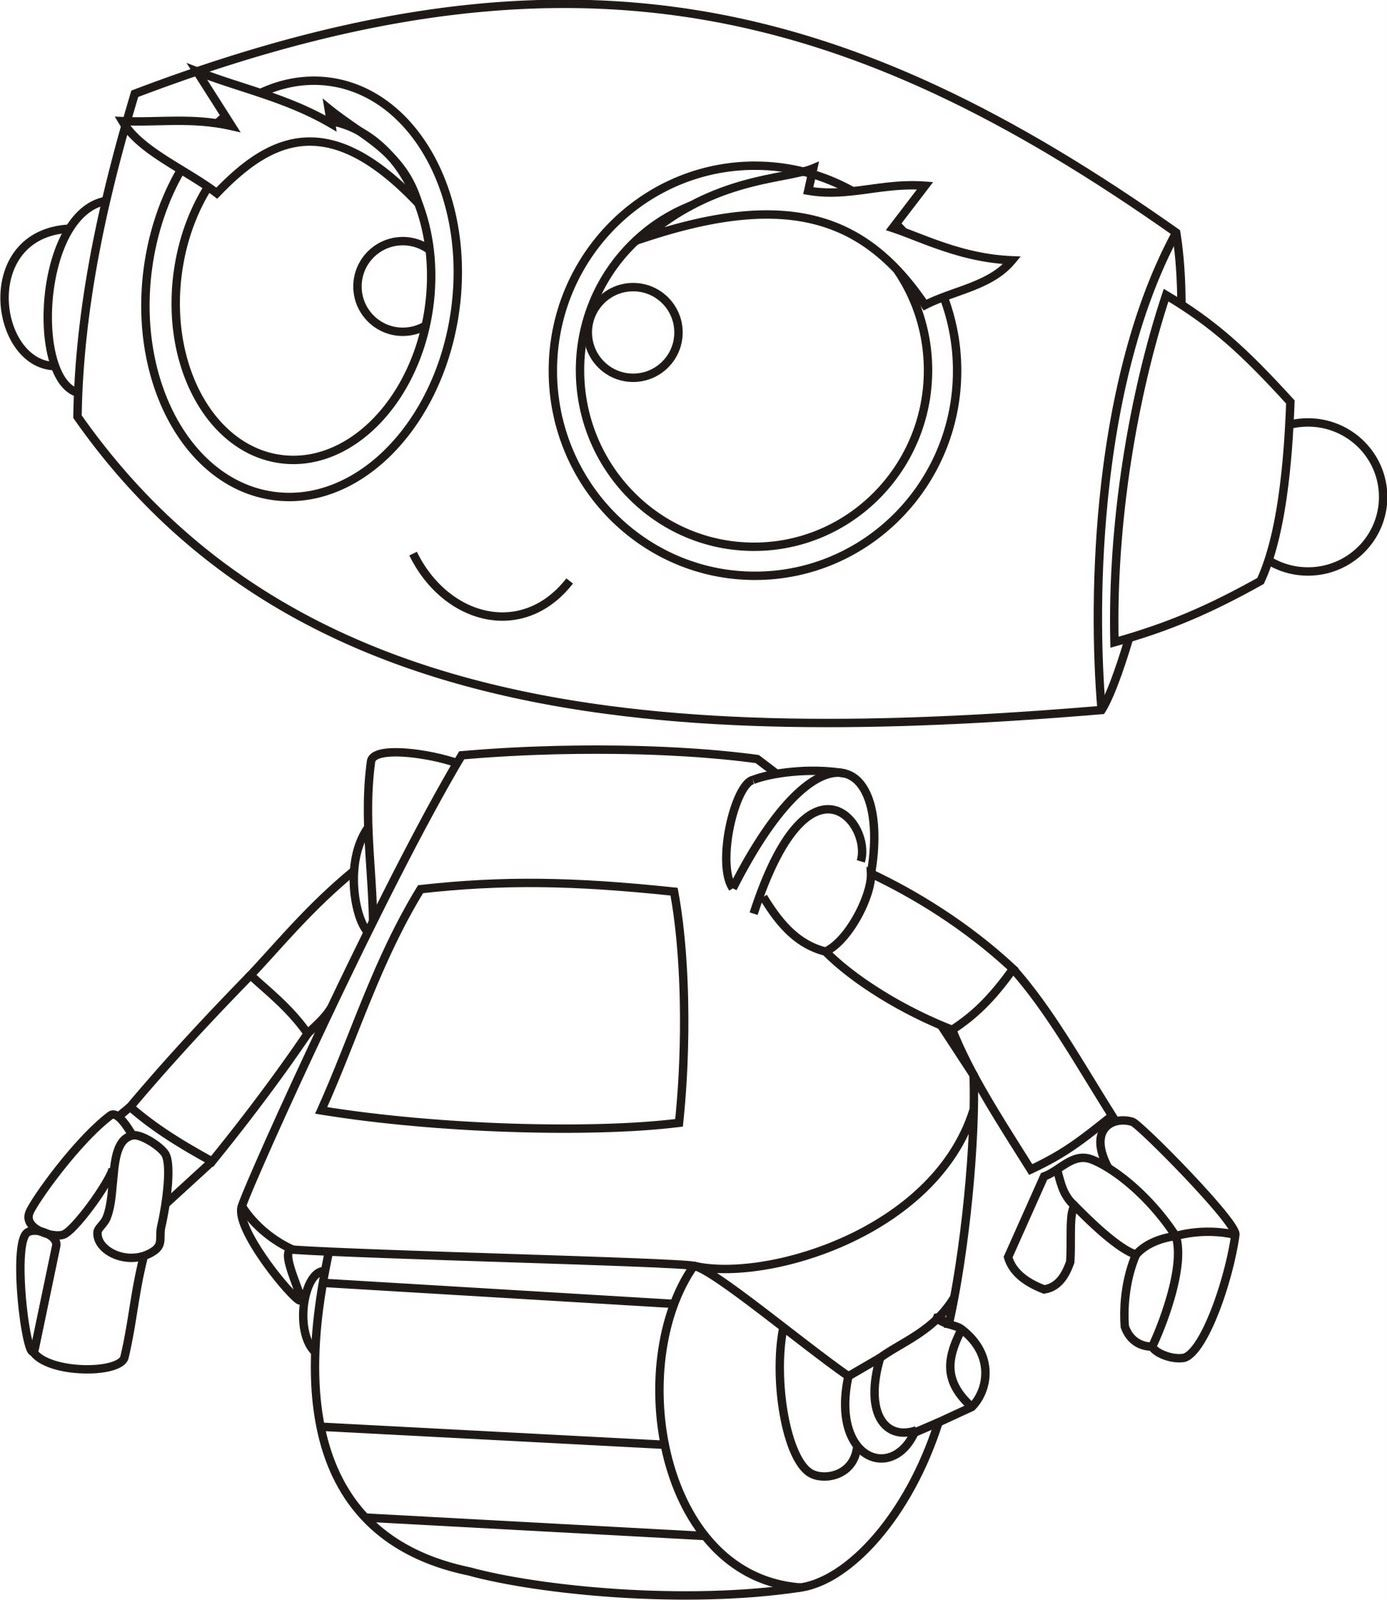 Robots Legged Wheel Coloring Pages For Kids Gxx Printable Robots Coloring Pages For Kids Robot Cartoon Robots Drawing Cartoon Coloring Pages